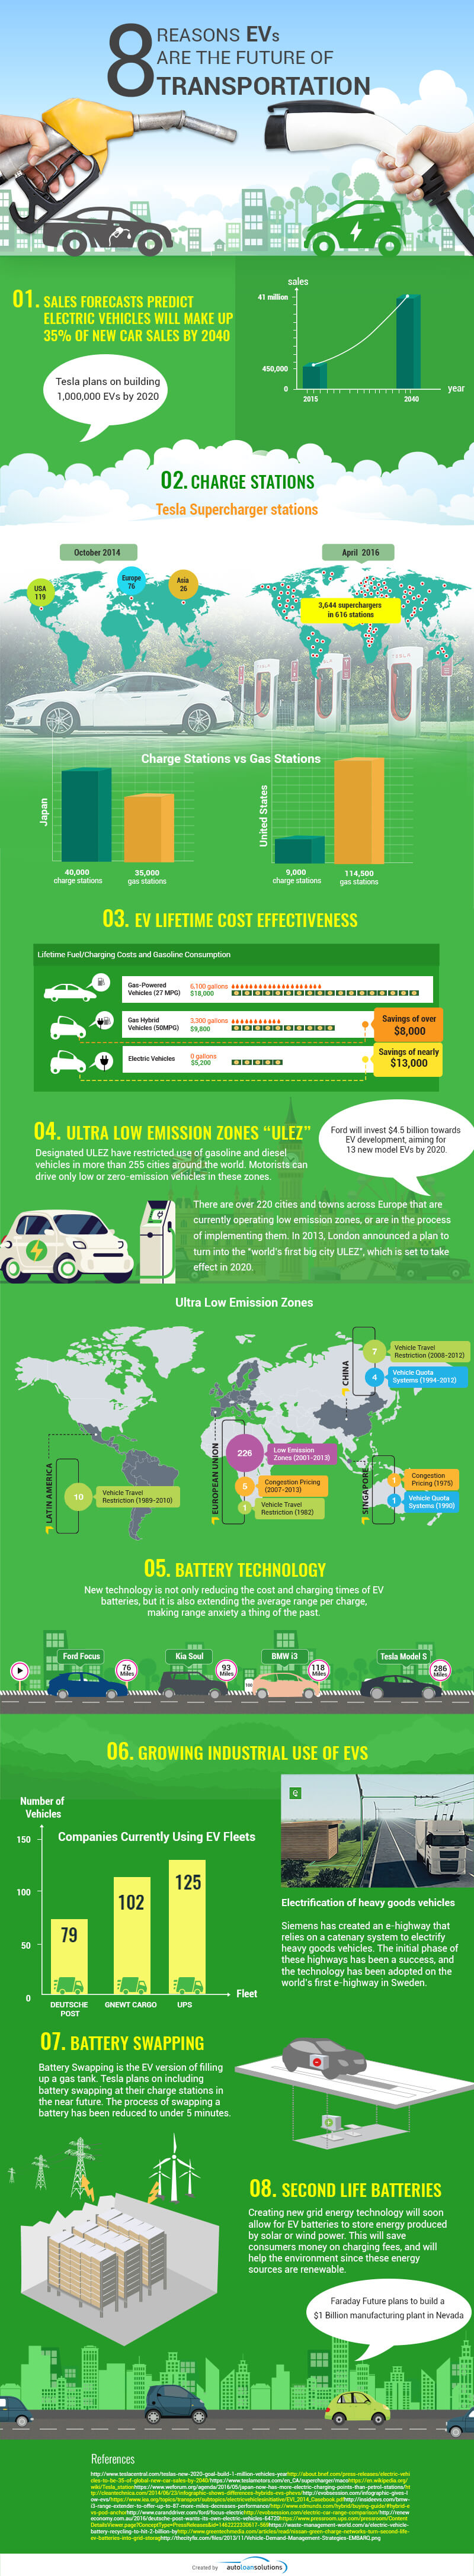 8 Reasons Electric Vehicles are the Future of Transportation